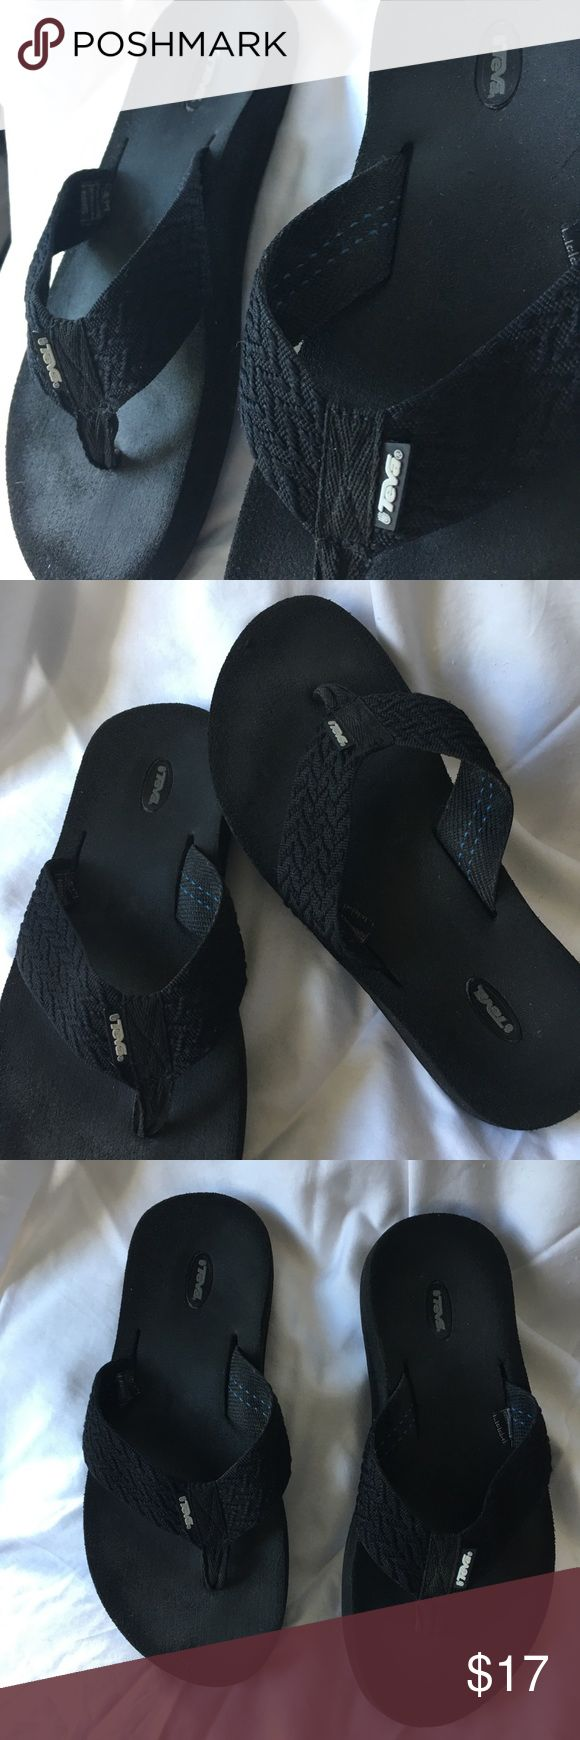 Teva flip flops Black. Comfortable. Worn a few times. Woven band is flat so it won't bother top of your foot! Some wear from previous use. Perfect on the bottom/soles are perfect as you can see in picture! US size 8. Teva Shoes Sandals